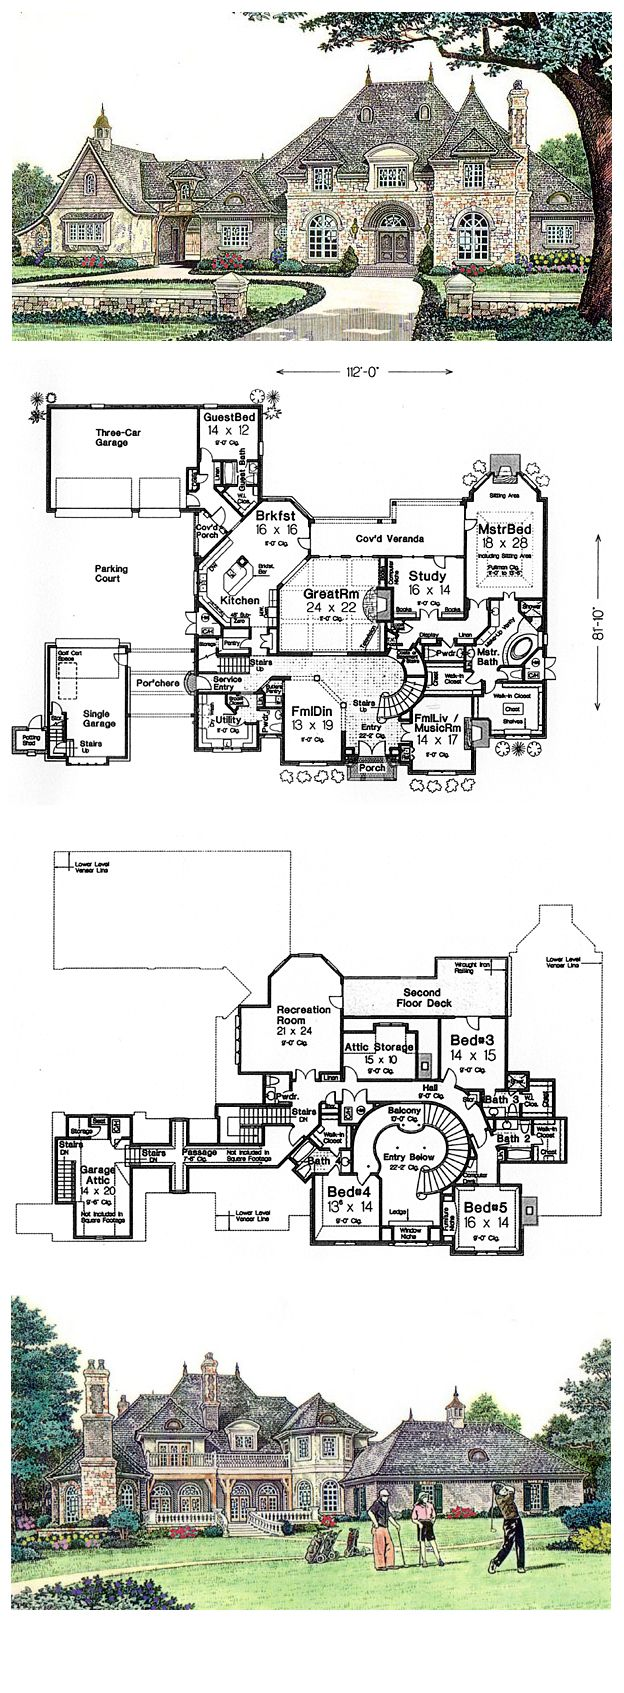 5 bedroom 3 bathroom house plans -  5 Bedrooms 6 Bathrooms Cool House Plan Id Chp 39871 Total Living Area 6274 Sq Ft